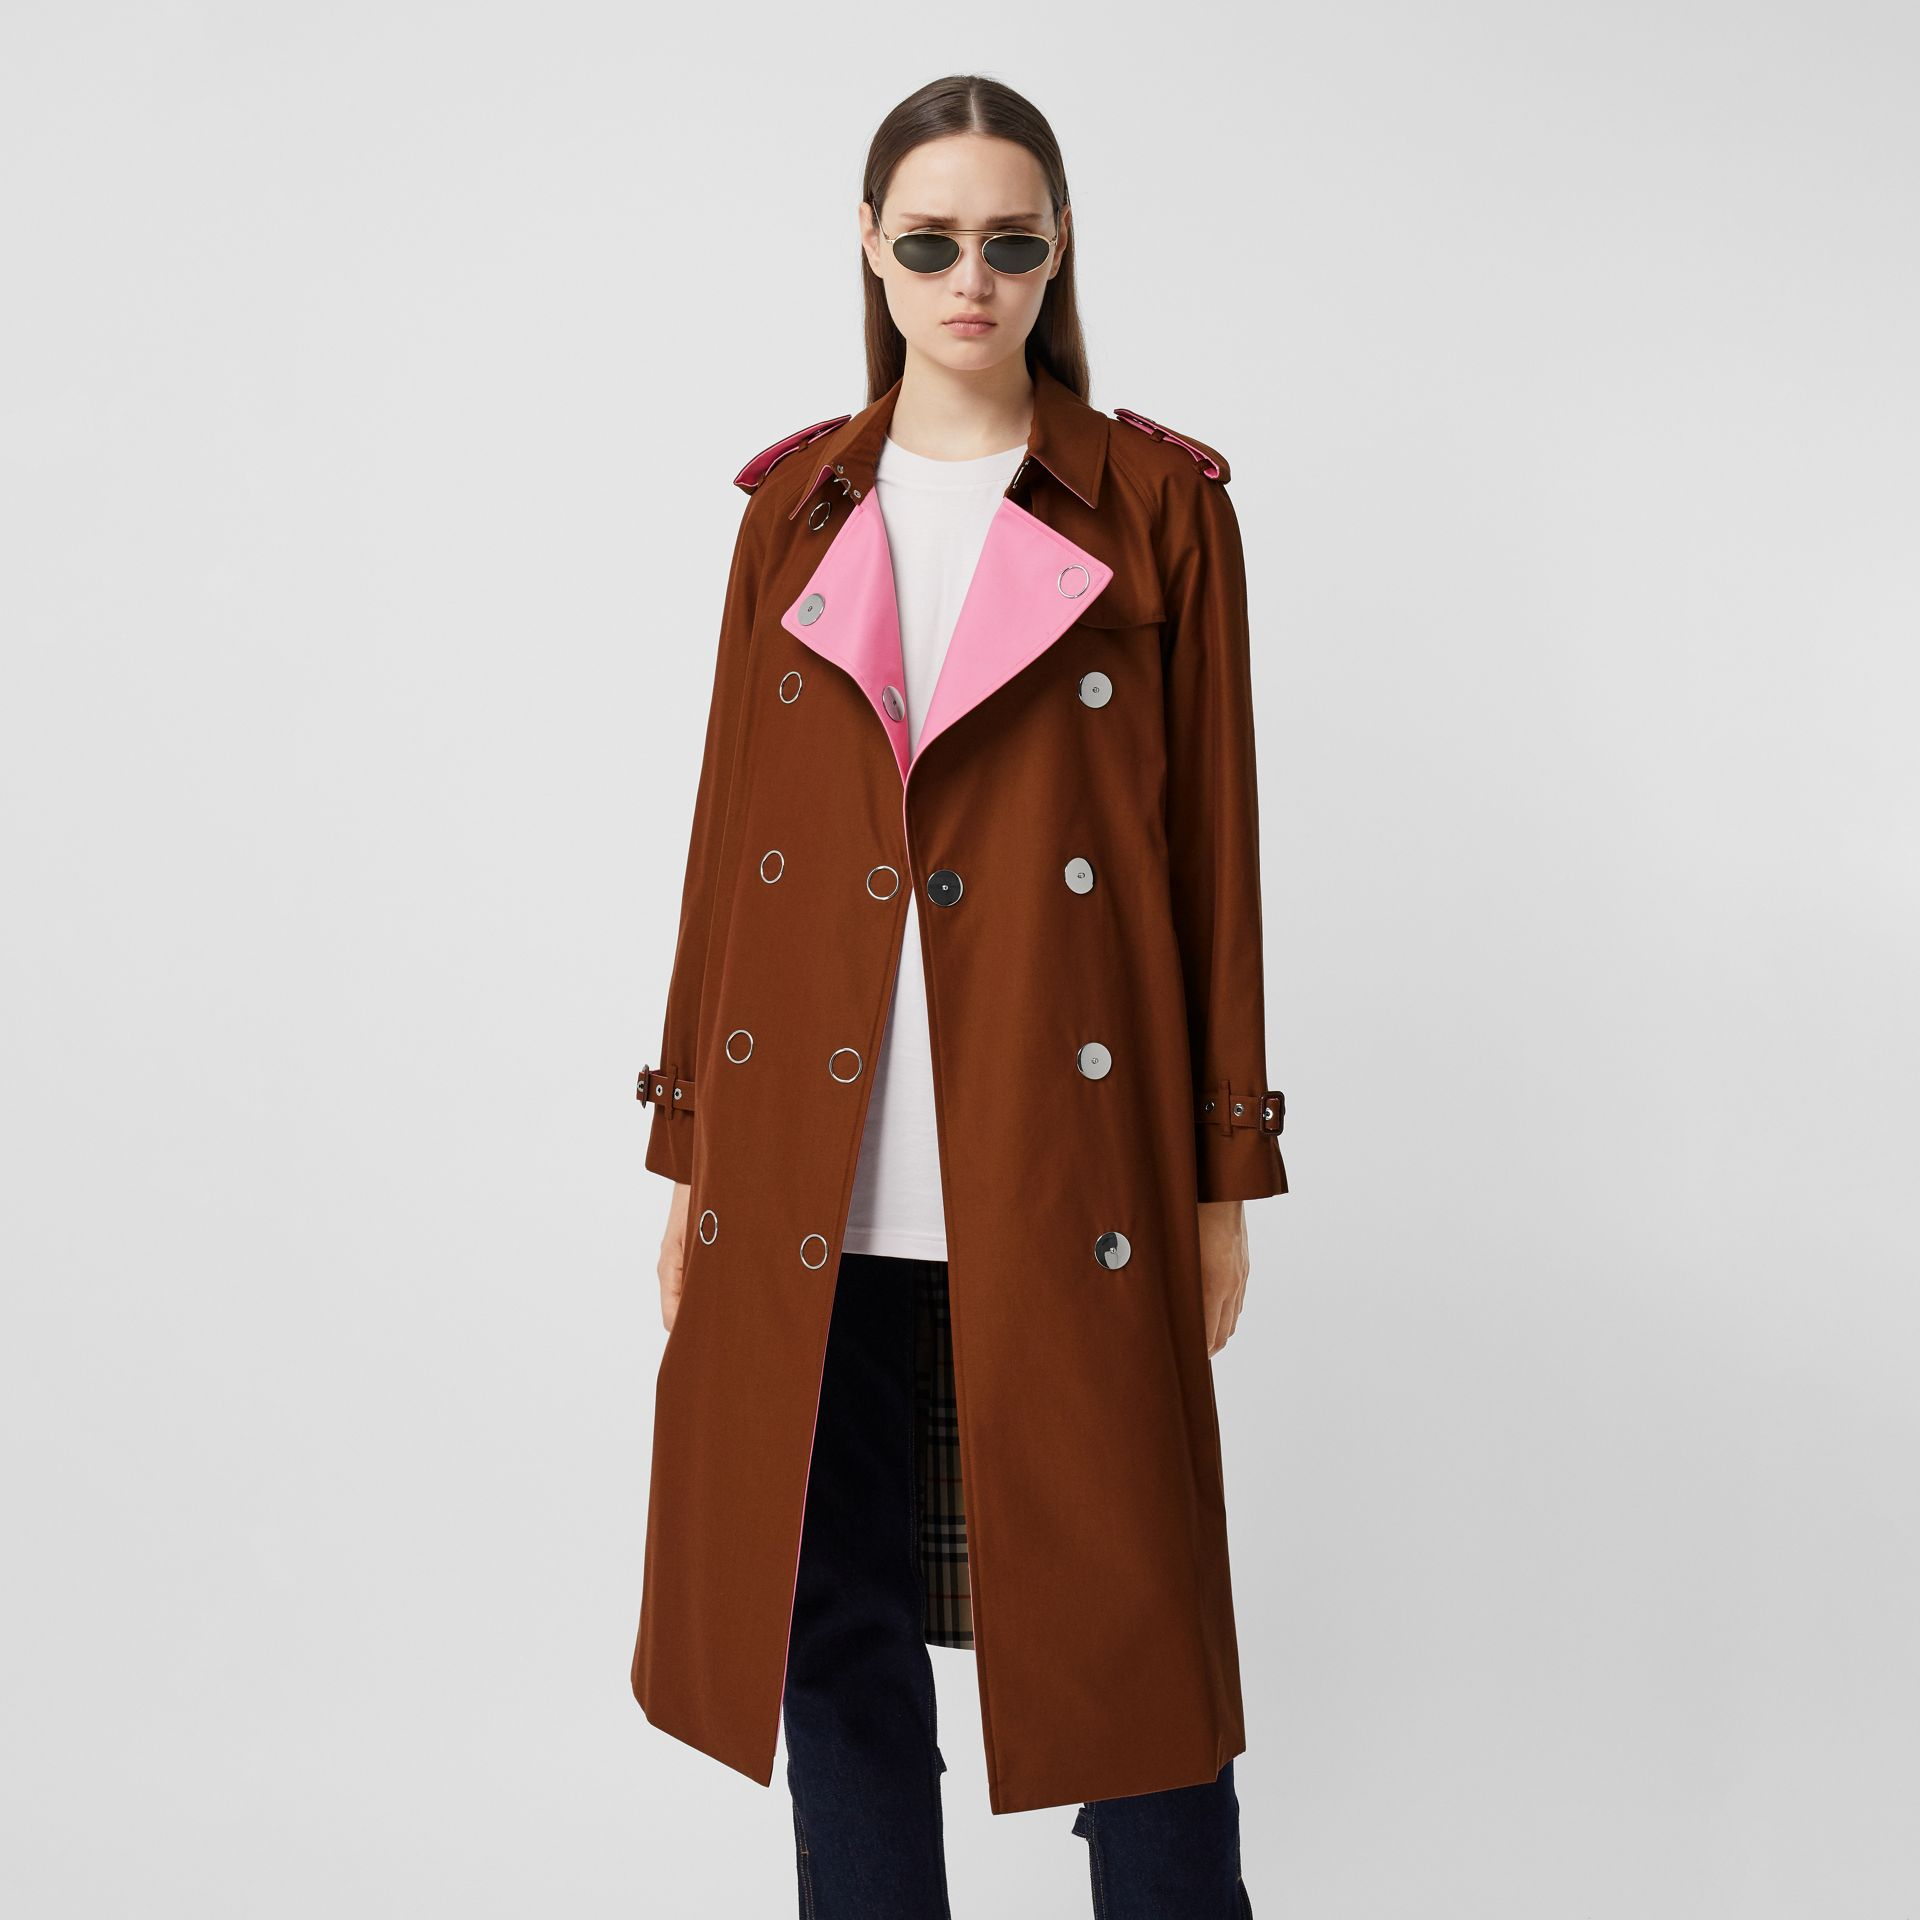 Colour Block Cotton Gabardine Trench Coat in Chestnut Brown - Women | Burberry - gallery image 5